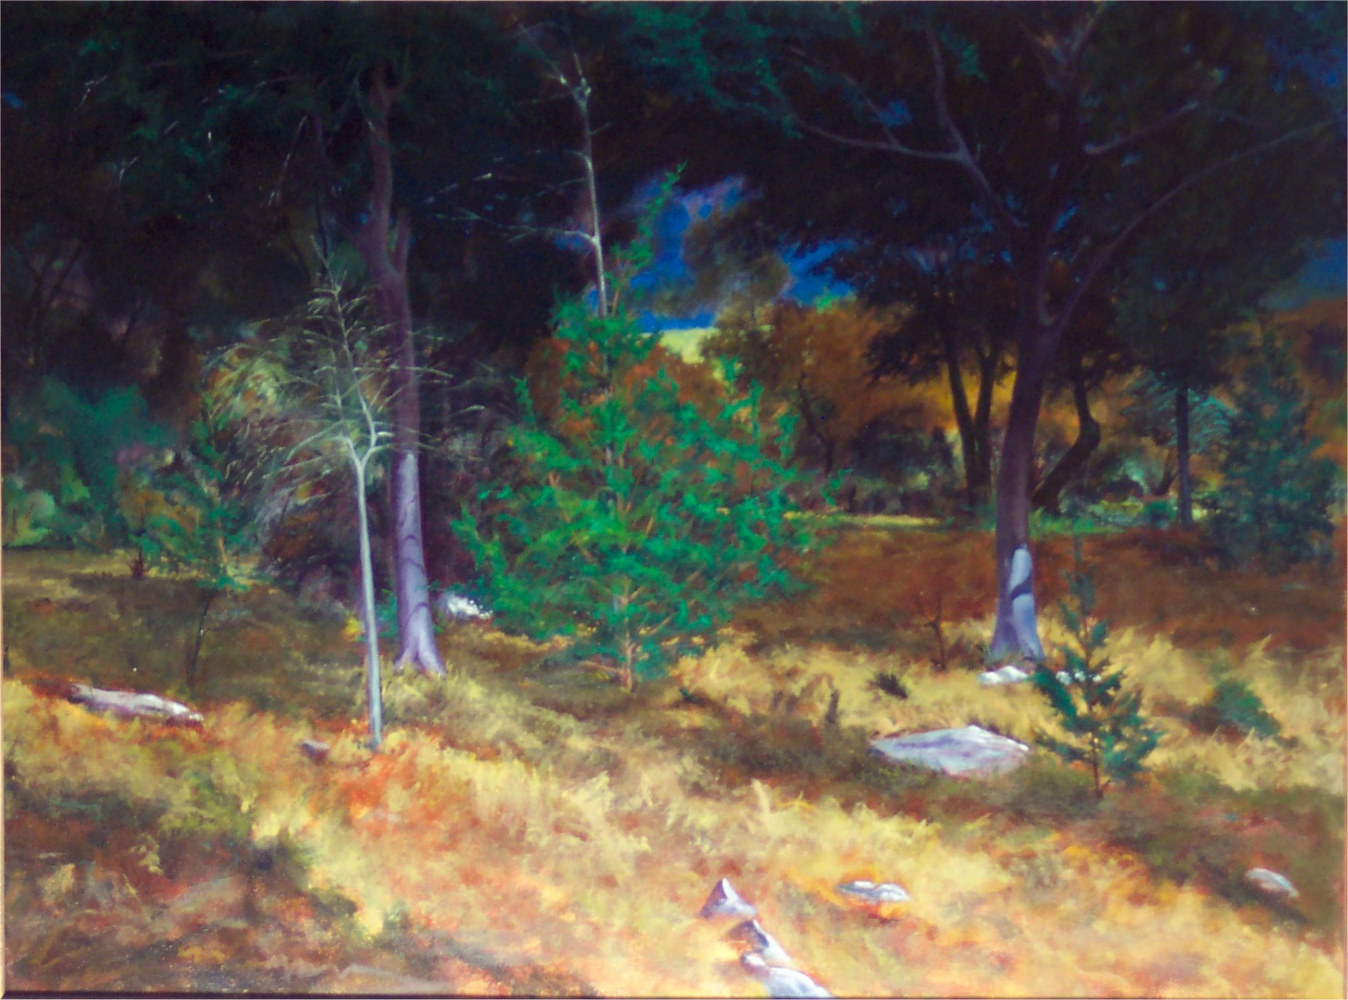 Afternoon Delight, Georgetown, Texas 30x40 by Gary Nowlin